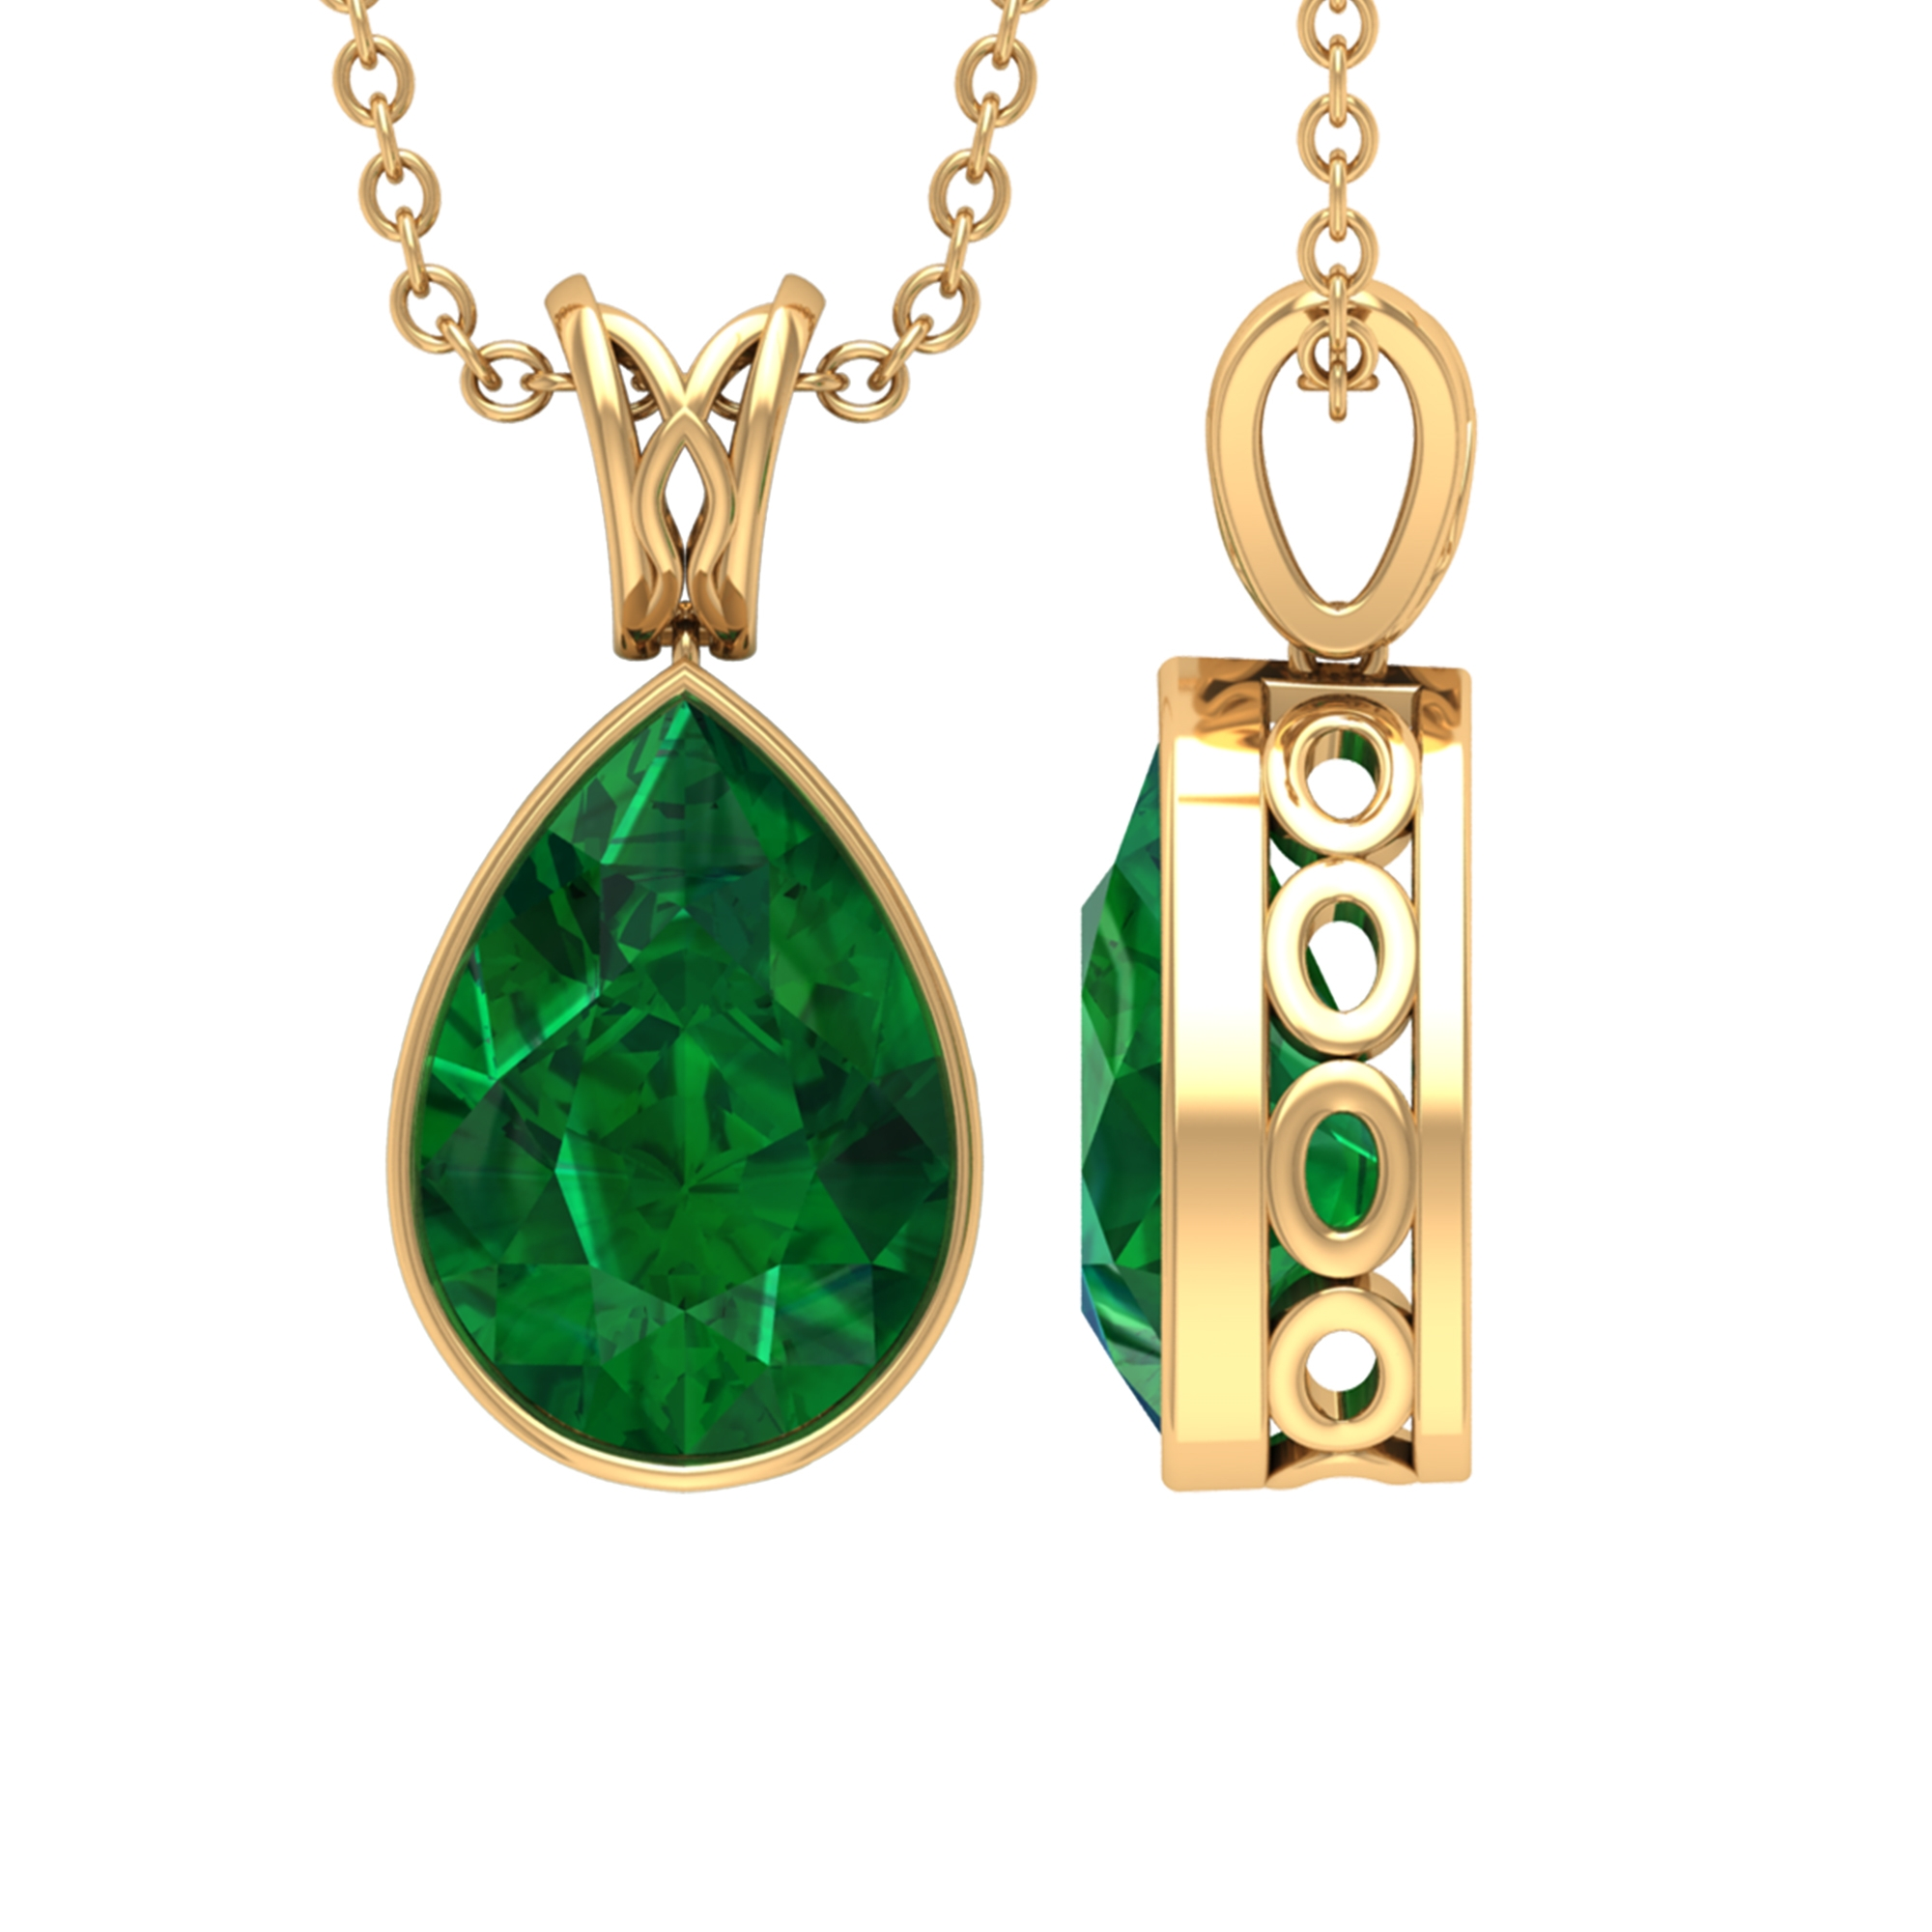 7X10 MM Pear Cut Emerald Solitaire Simple Pendant in Bezel Setting with Decorative Bail